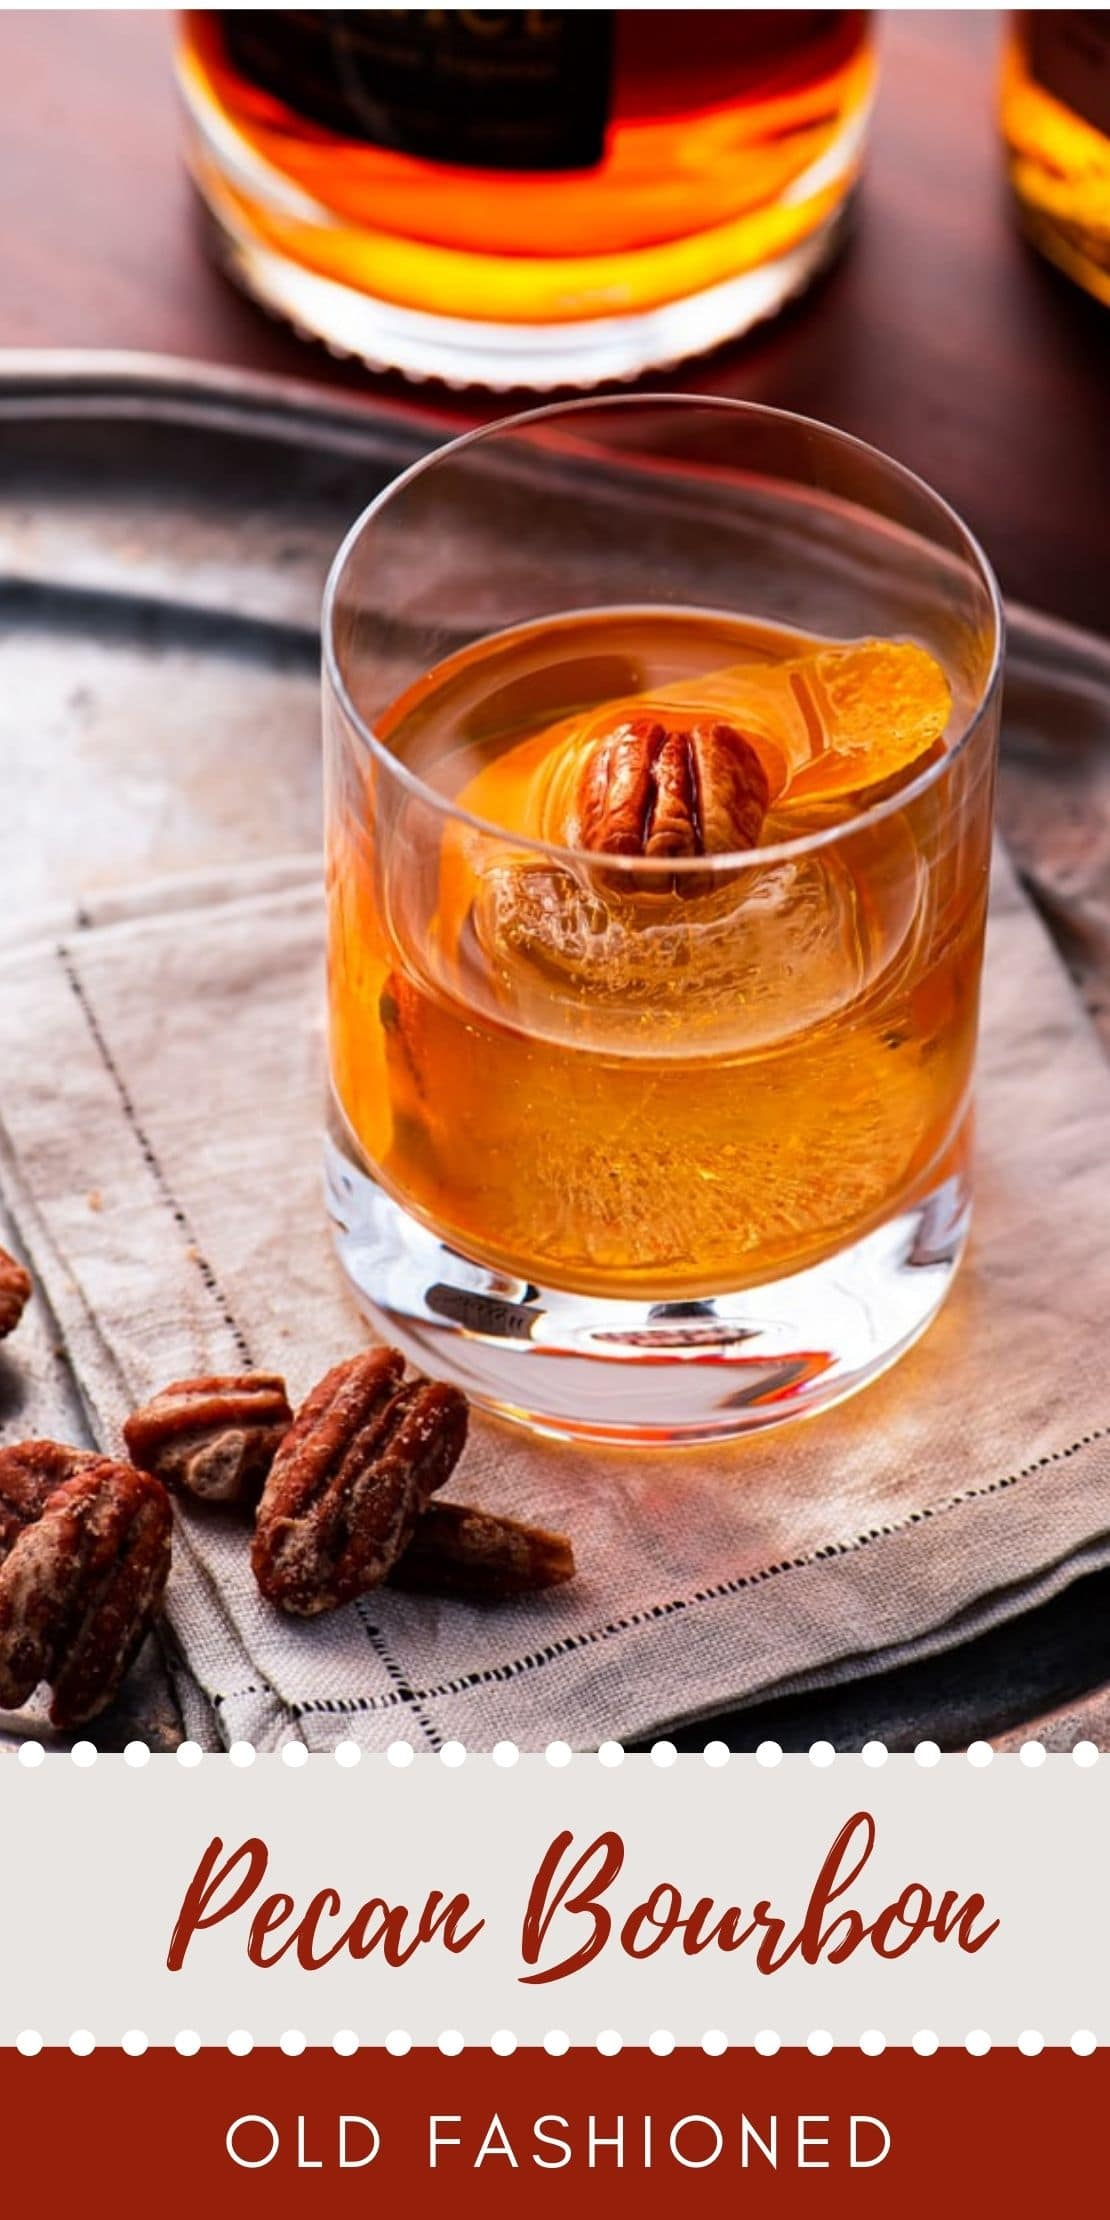 Pecan Bourbon Old Fashioned - Pecan Bourbon Old Fashioned Cocktail Recipe